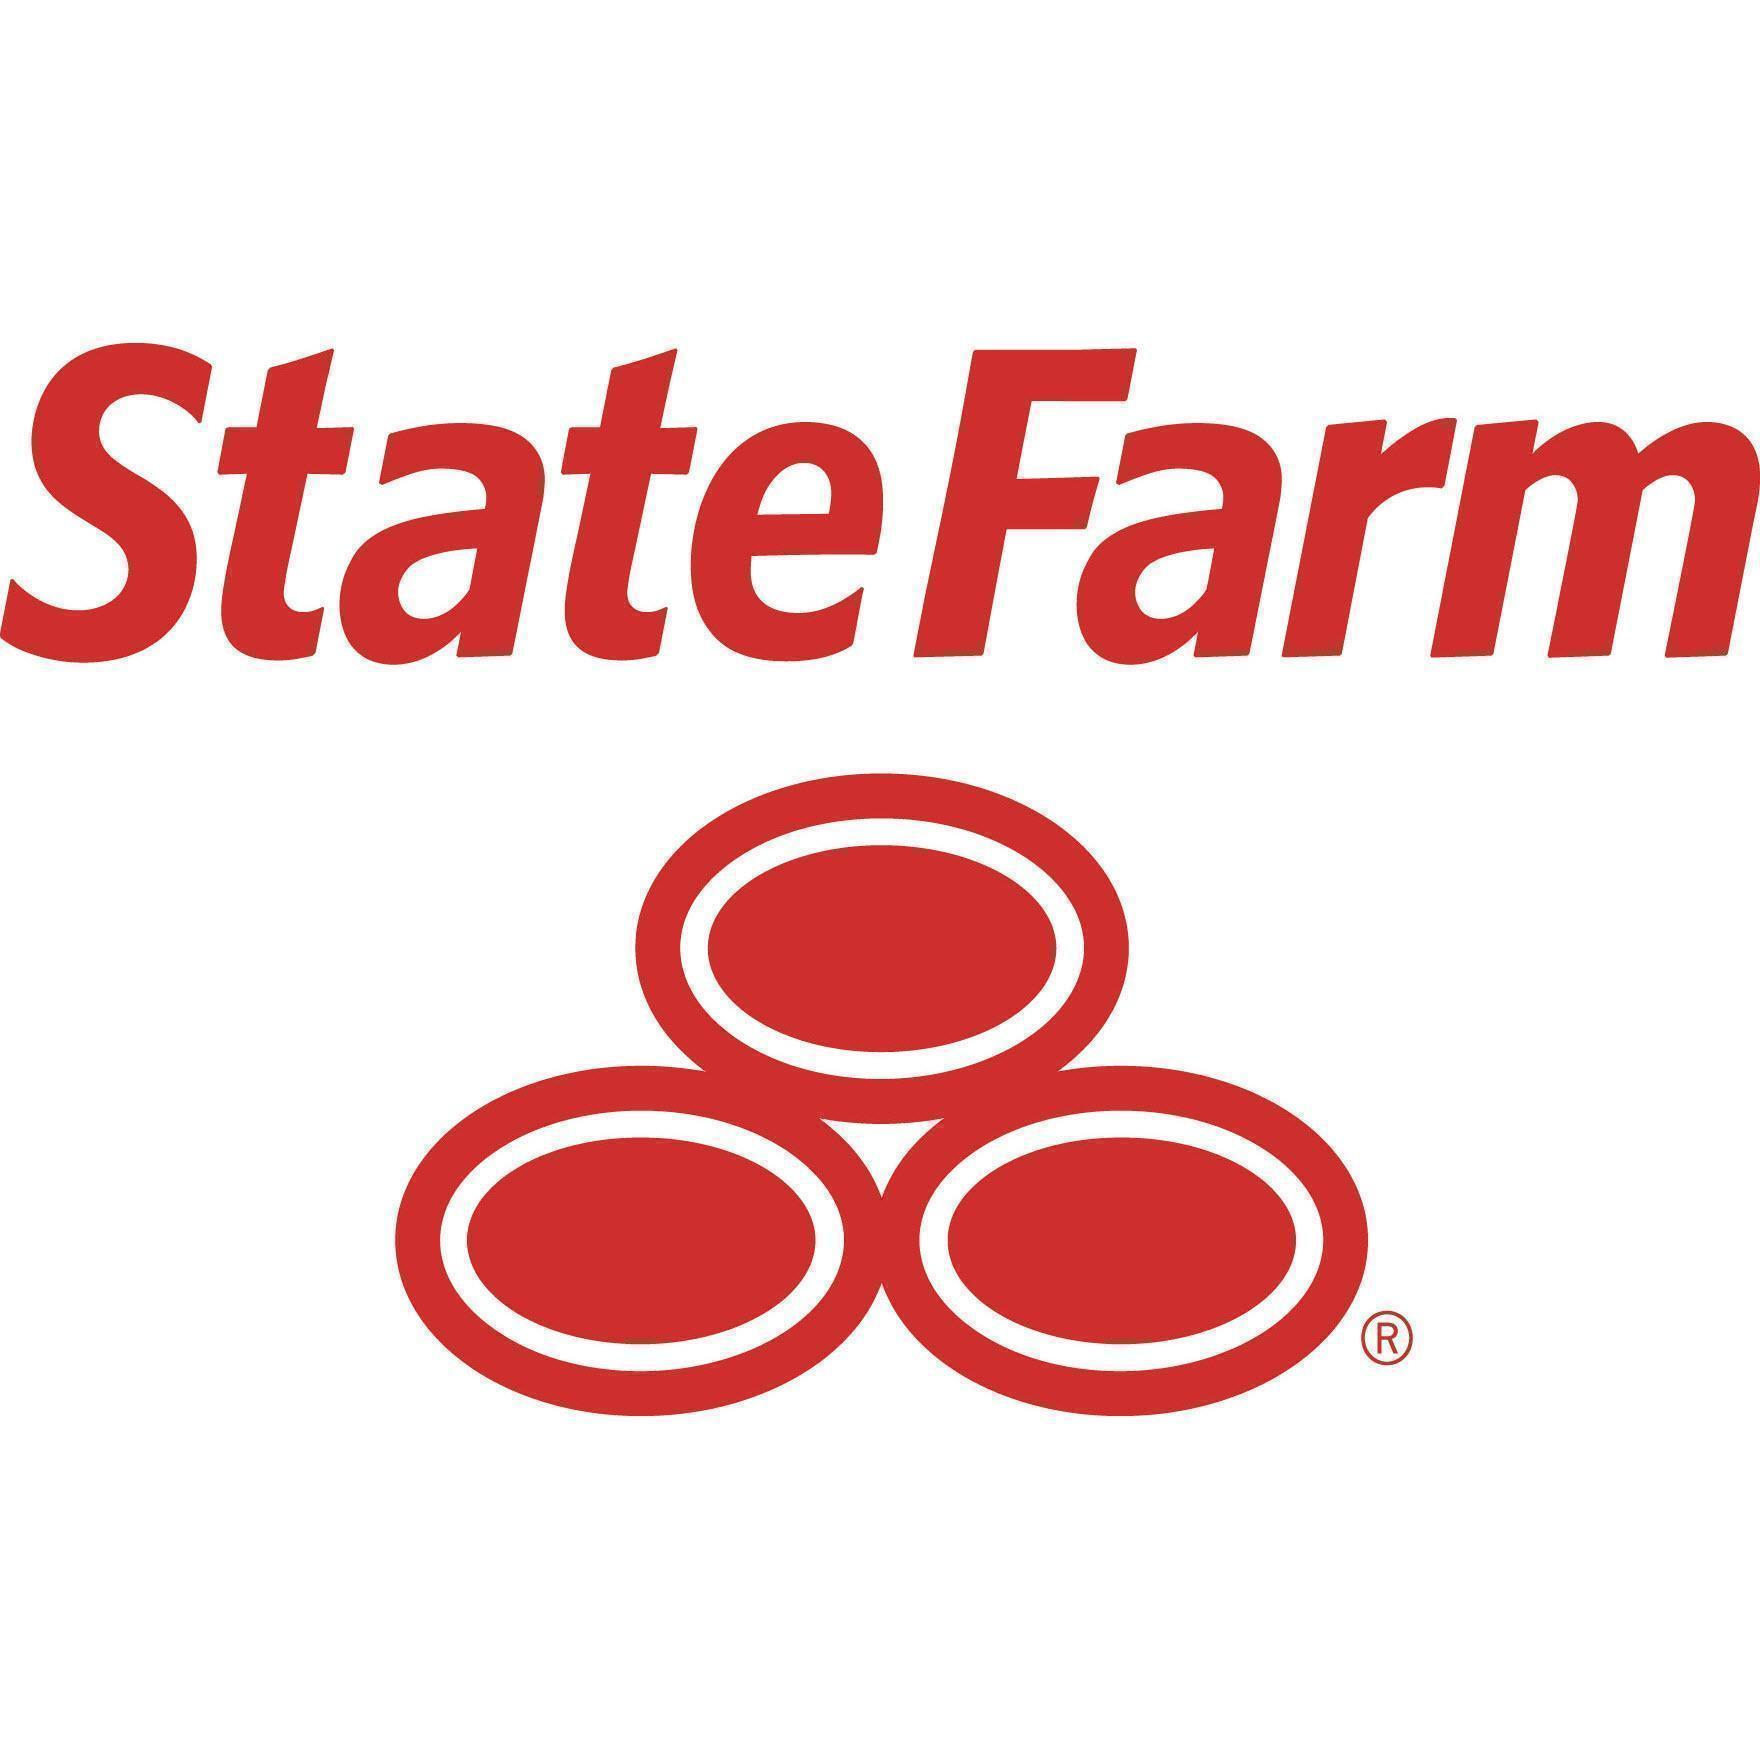 Grace Swaby-Smith - State Farm Insurance Agent image 1